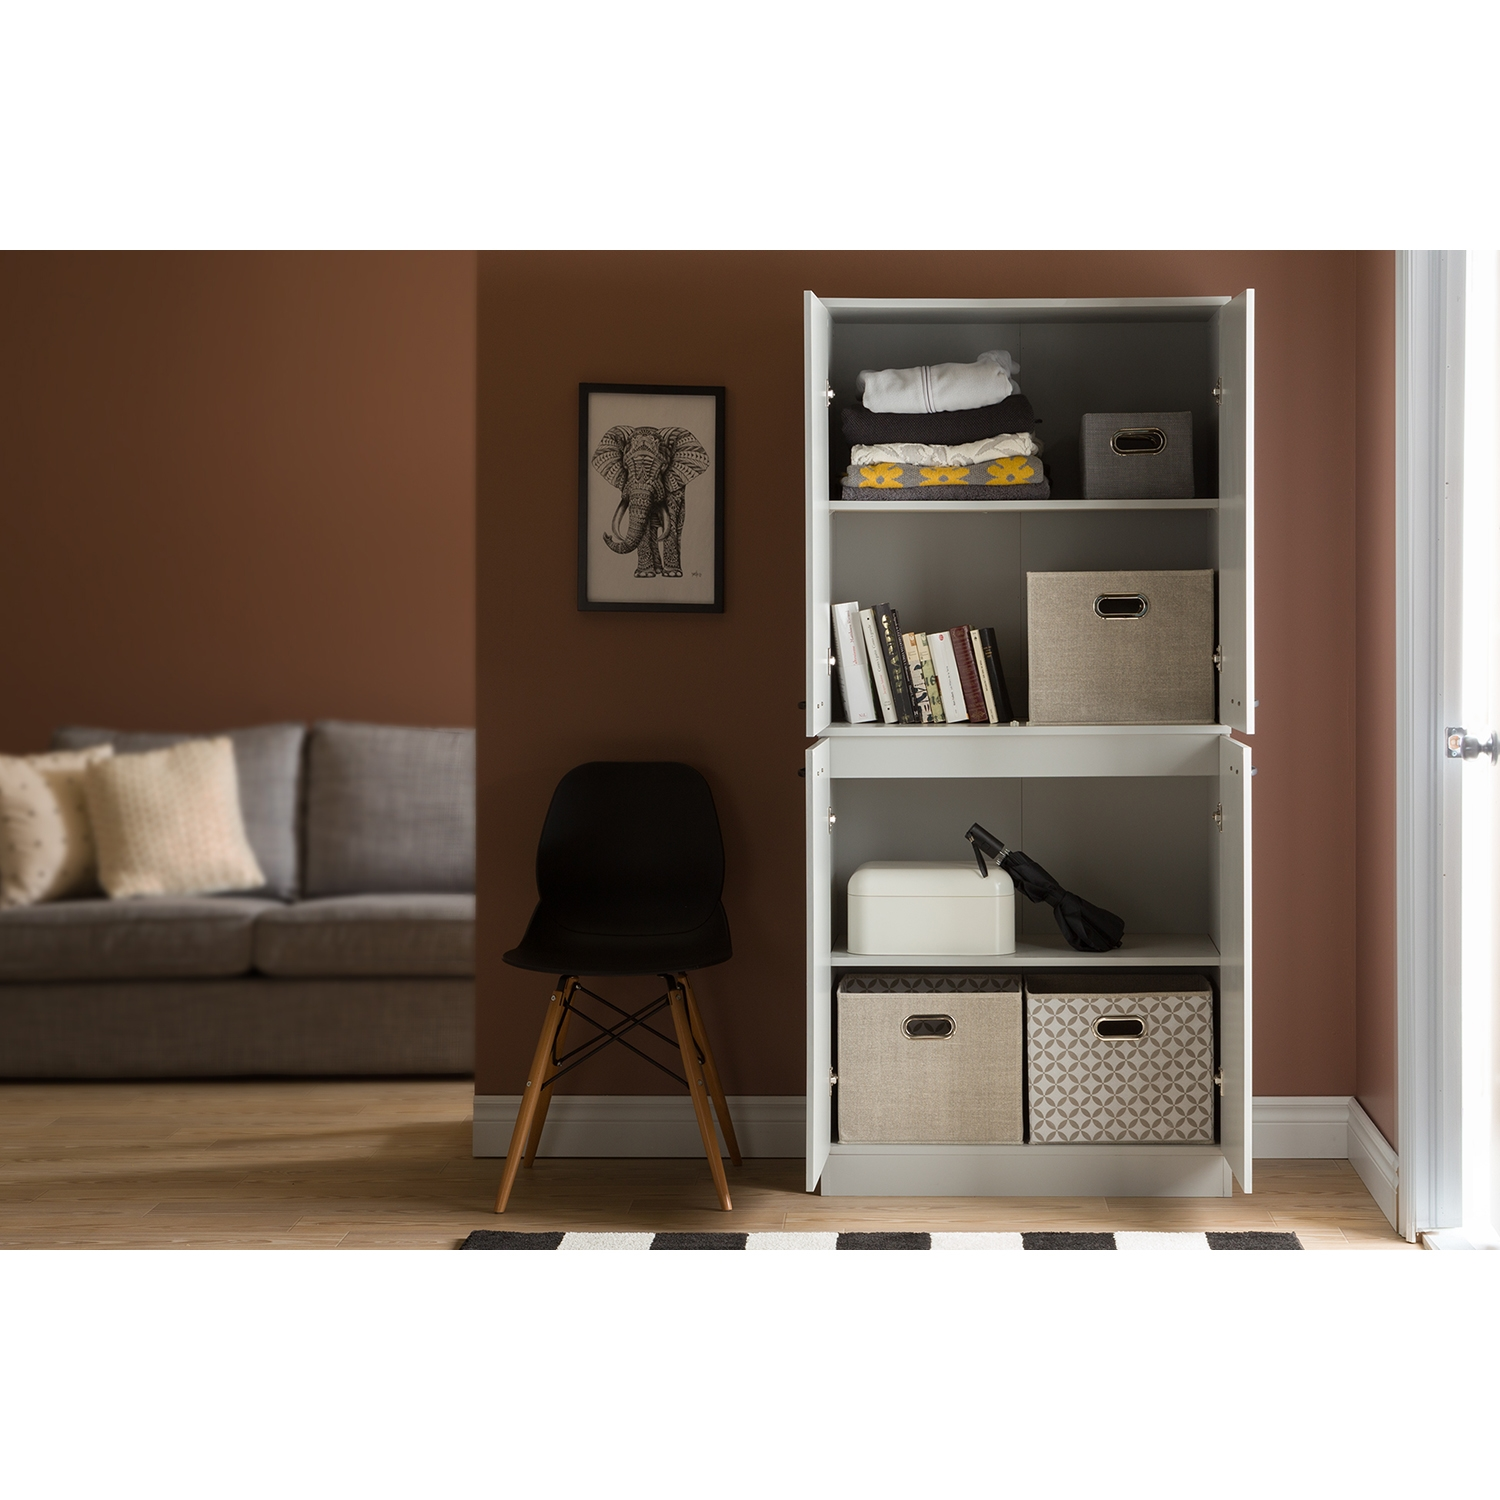 Axess Armoire - 4 Doors, Soft Gray - SS-10193